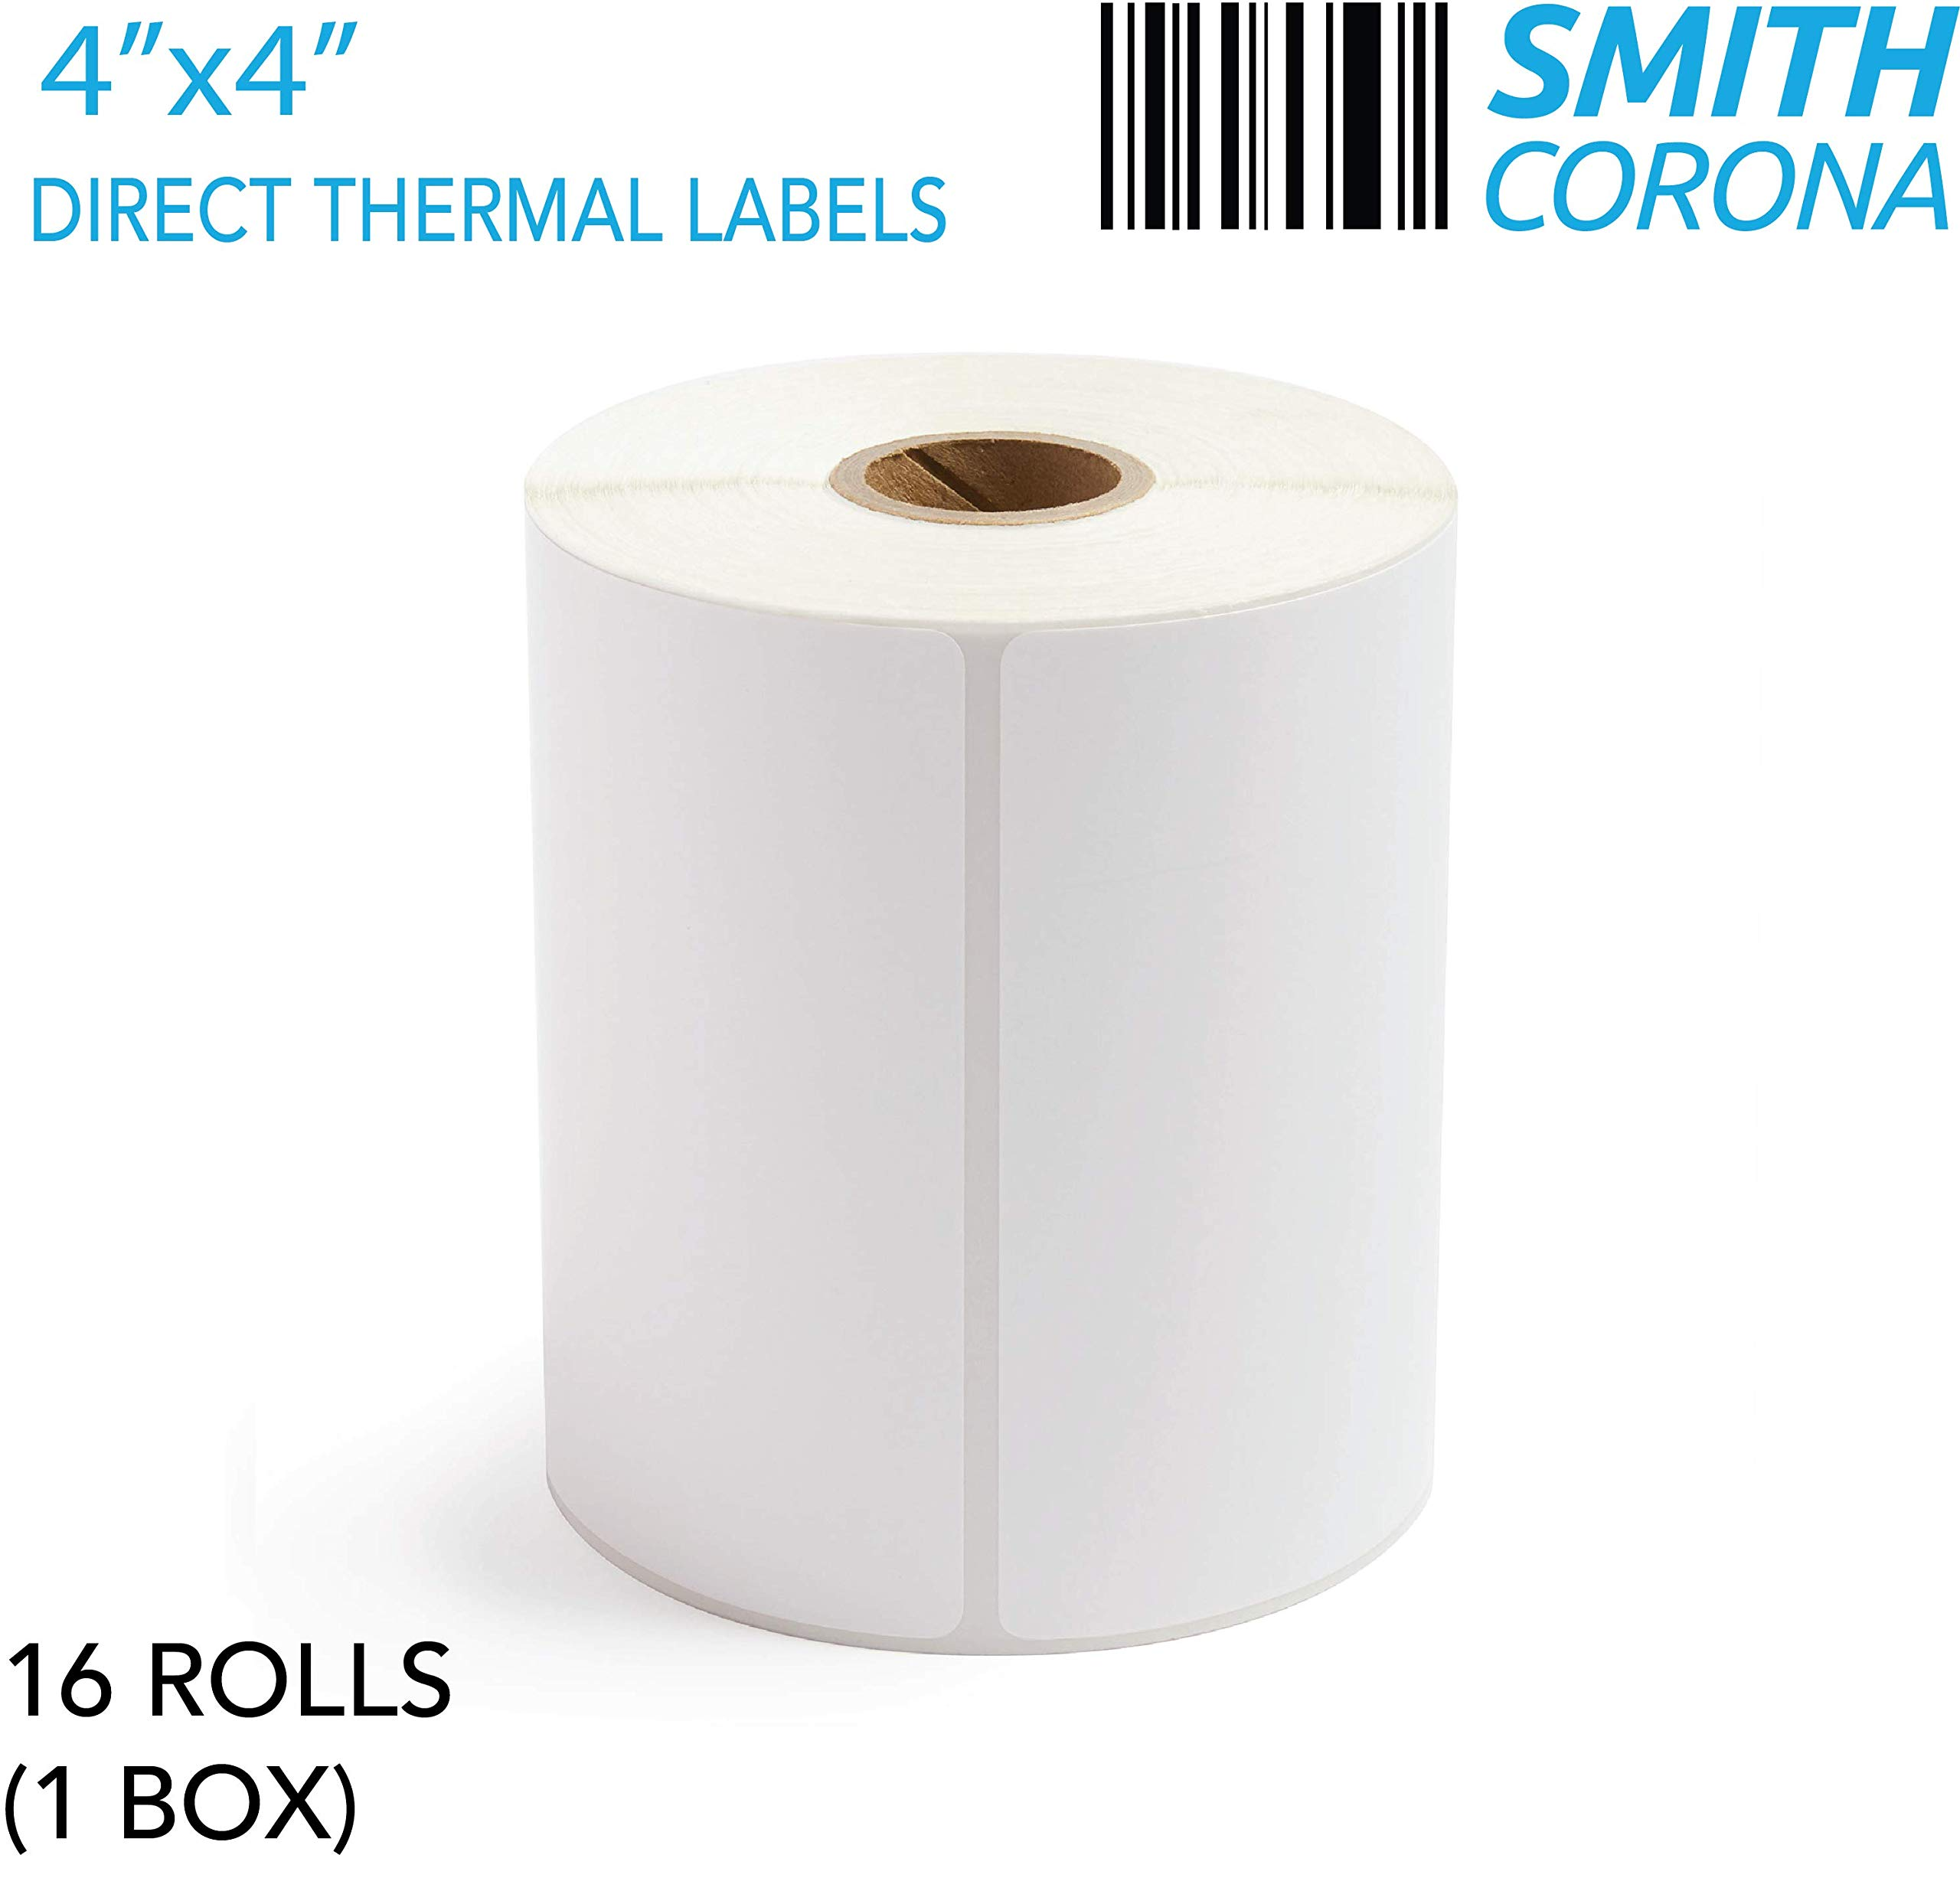 Smith Corona - 4x4 Direct Thermal Labels (1'' Core) - 365 Labels/Roll - 16 Rolls by Smith Corona